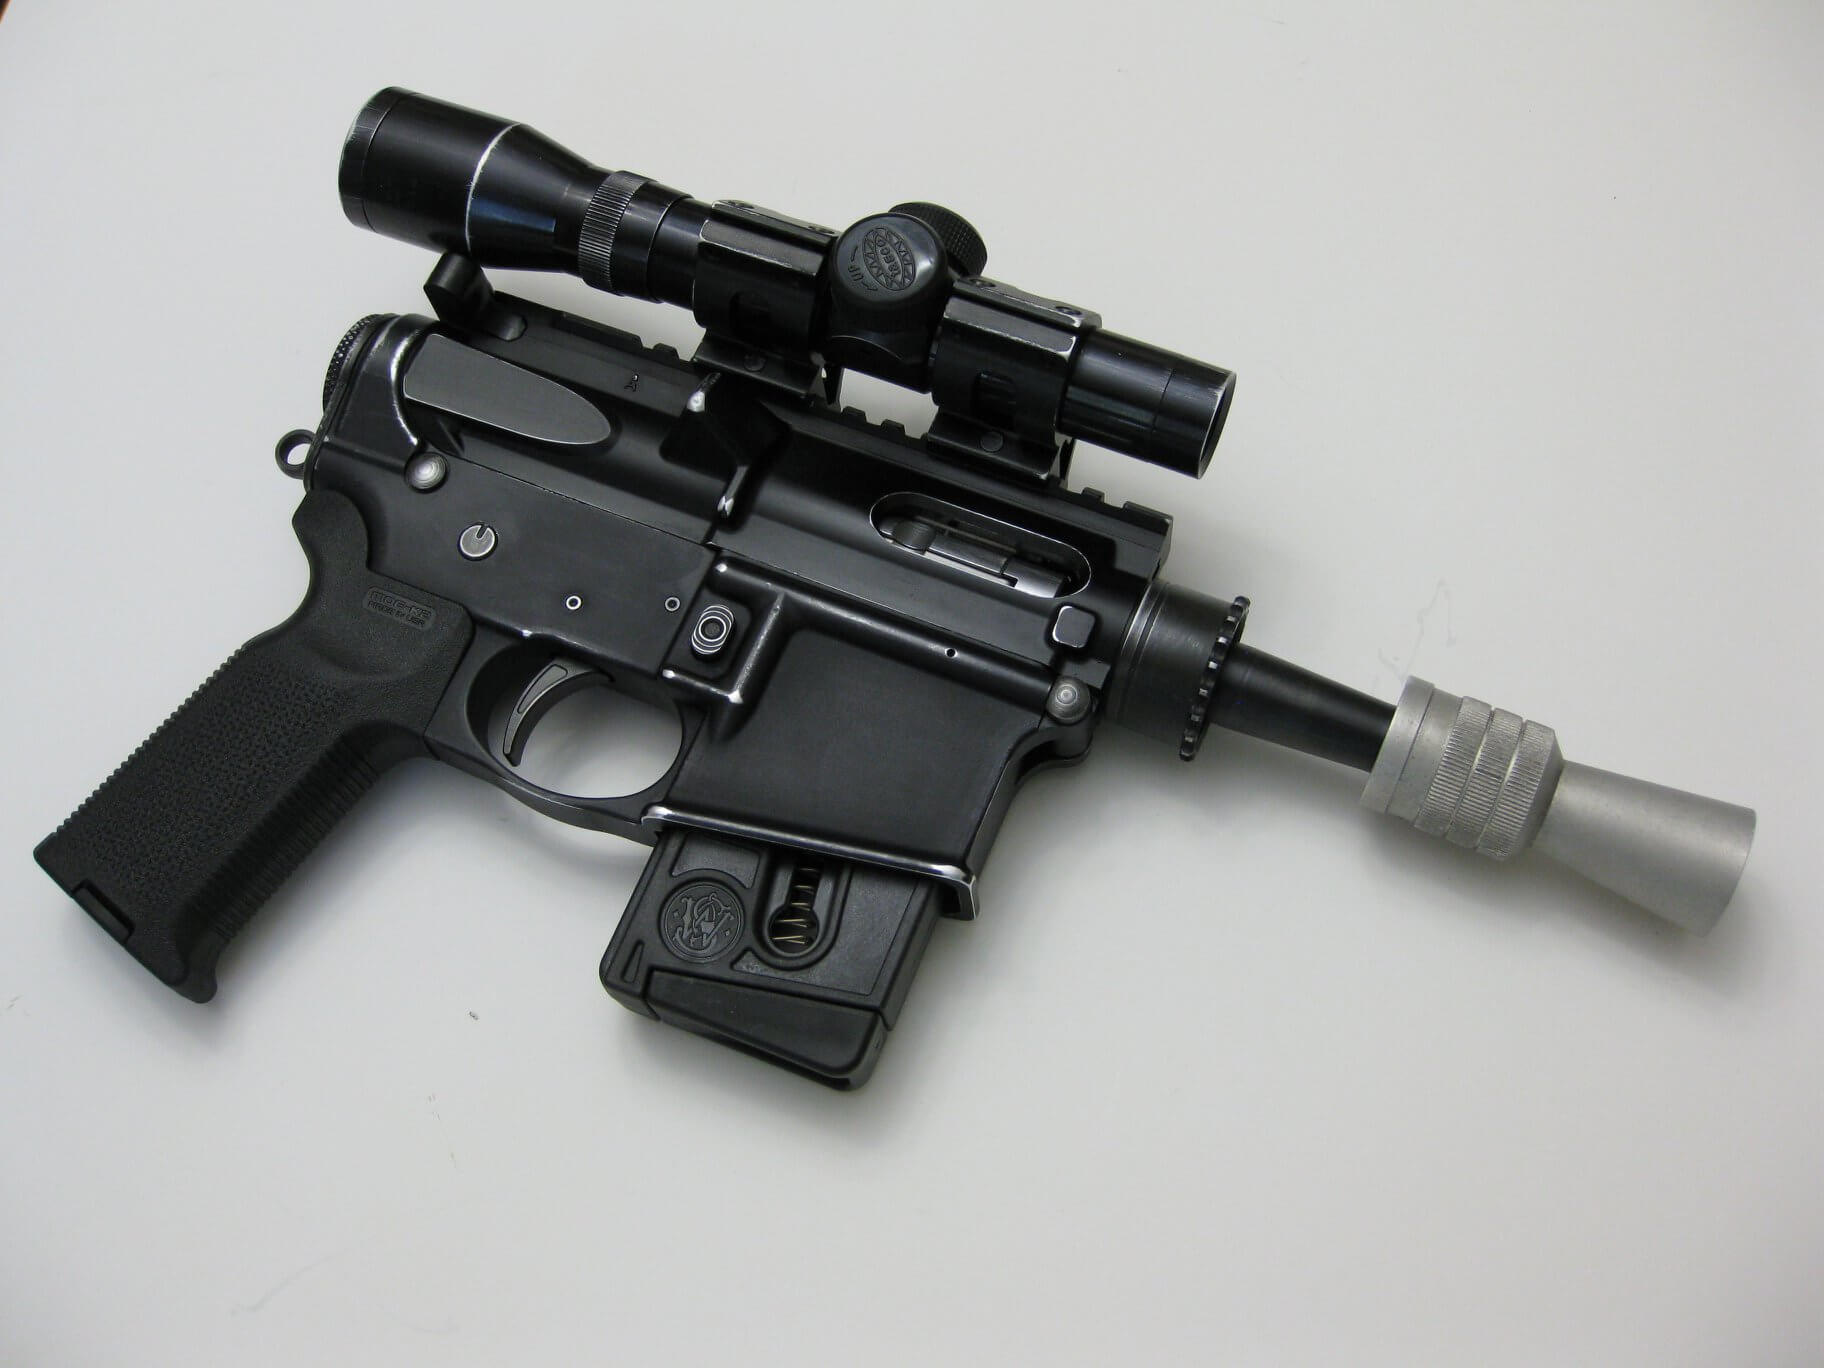 Want a Real Working Han Solo Blaster? Take a Look at This Fun Project